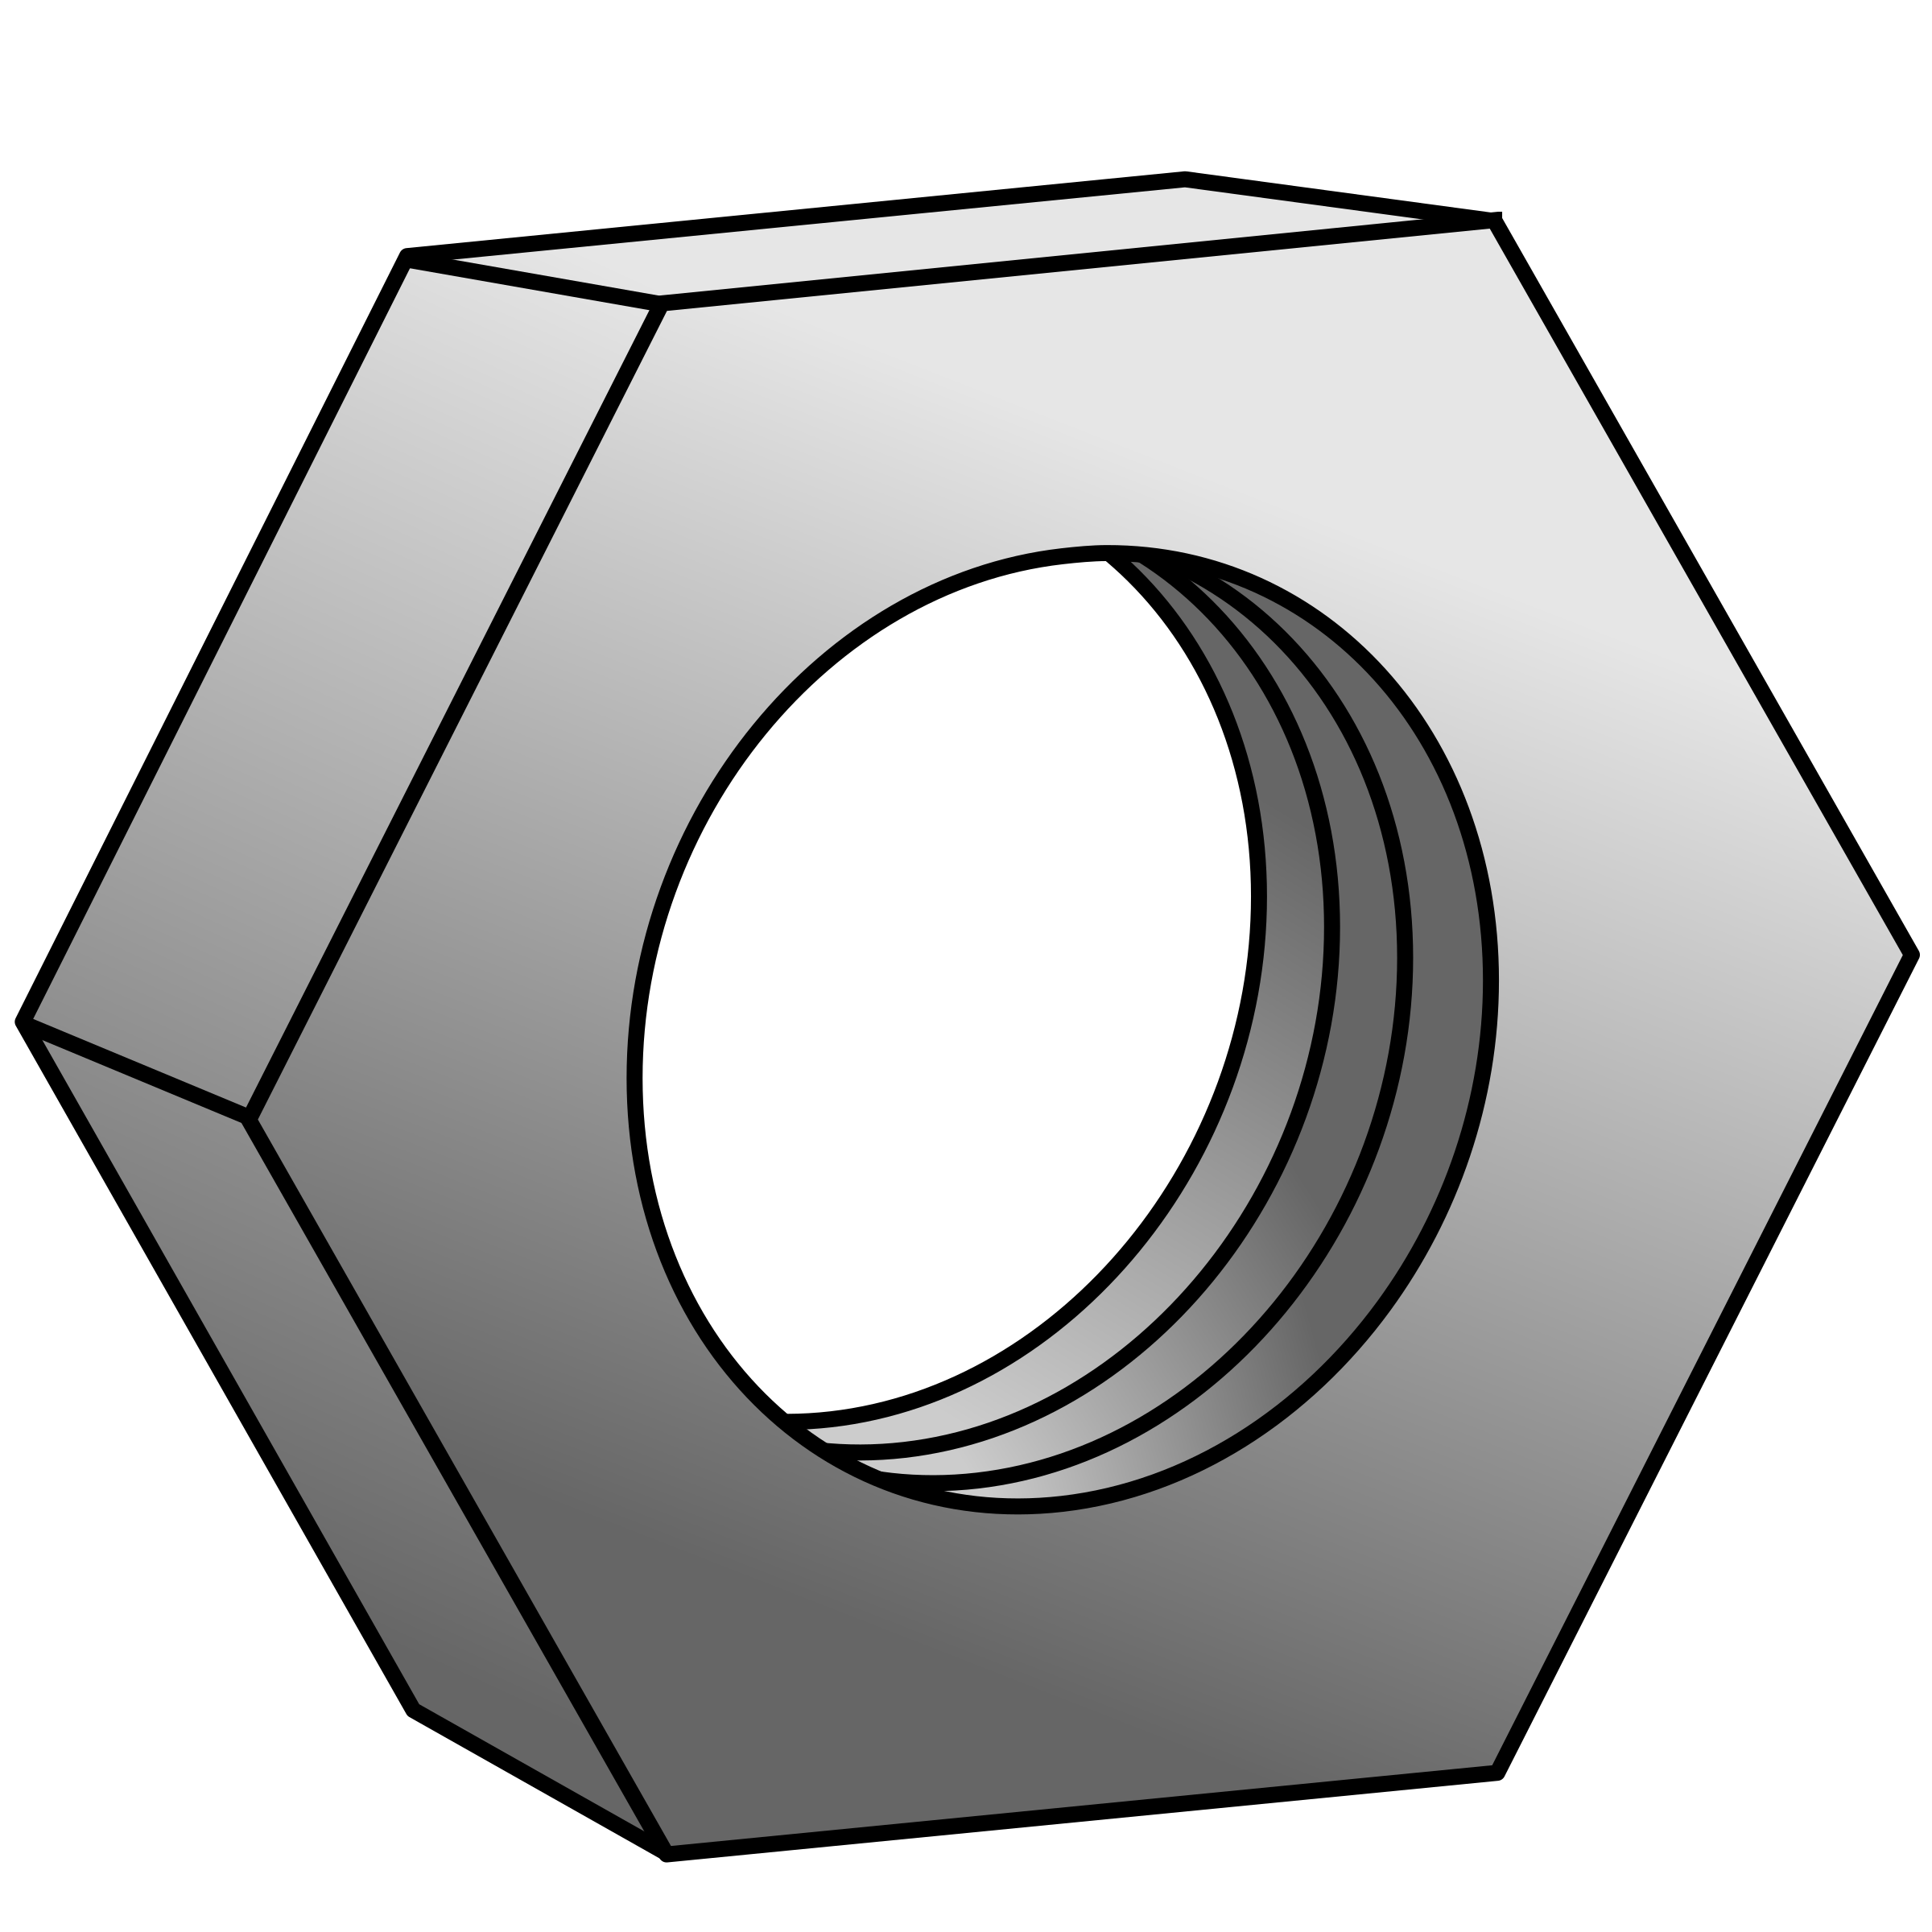 Nut clipart bolt tool. Hex for bolts colorized